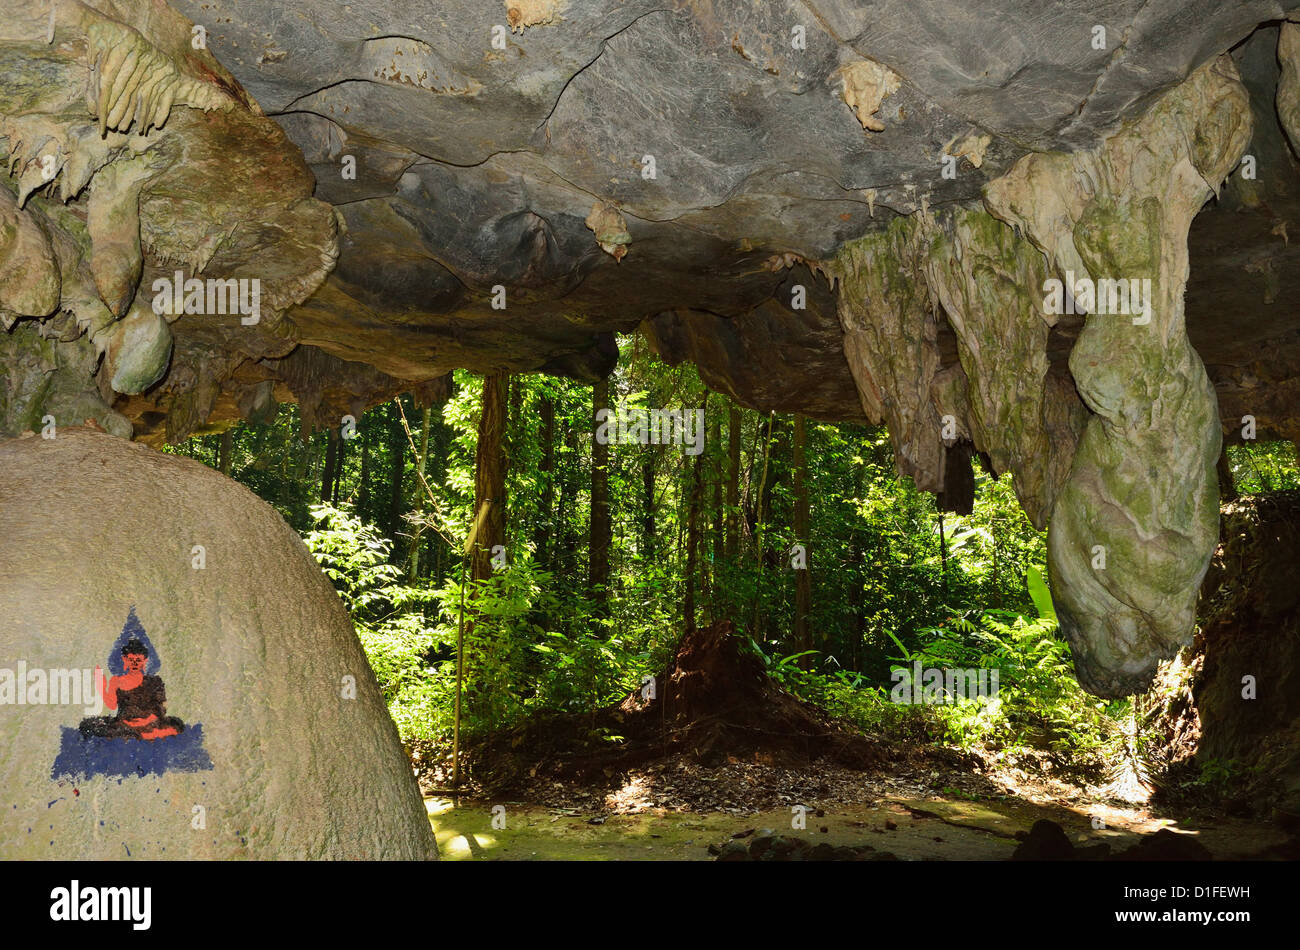 View from cave to rainforest, Tiger Cave Temple (Wat Tham Suea), Krabi Province, Thailand, Southeast Asia, Asia - Stock Image